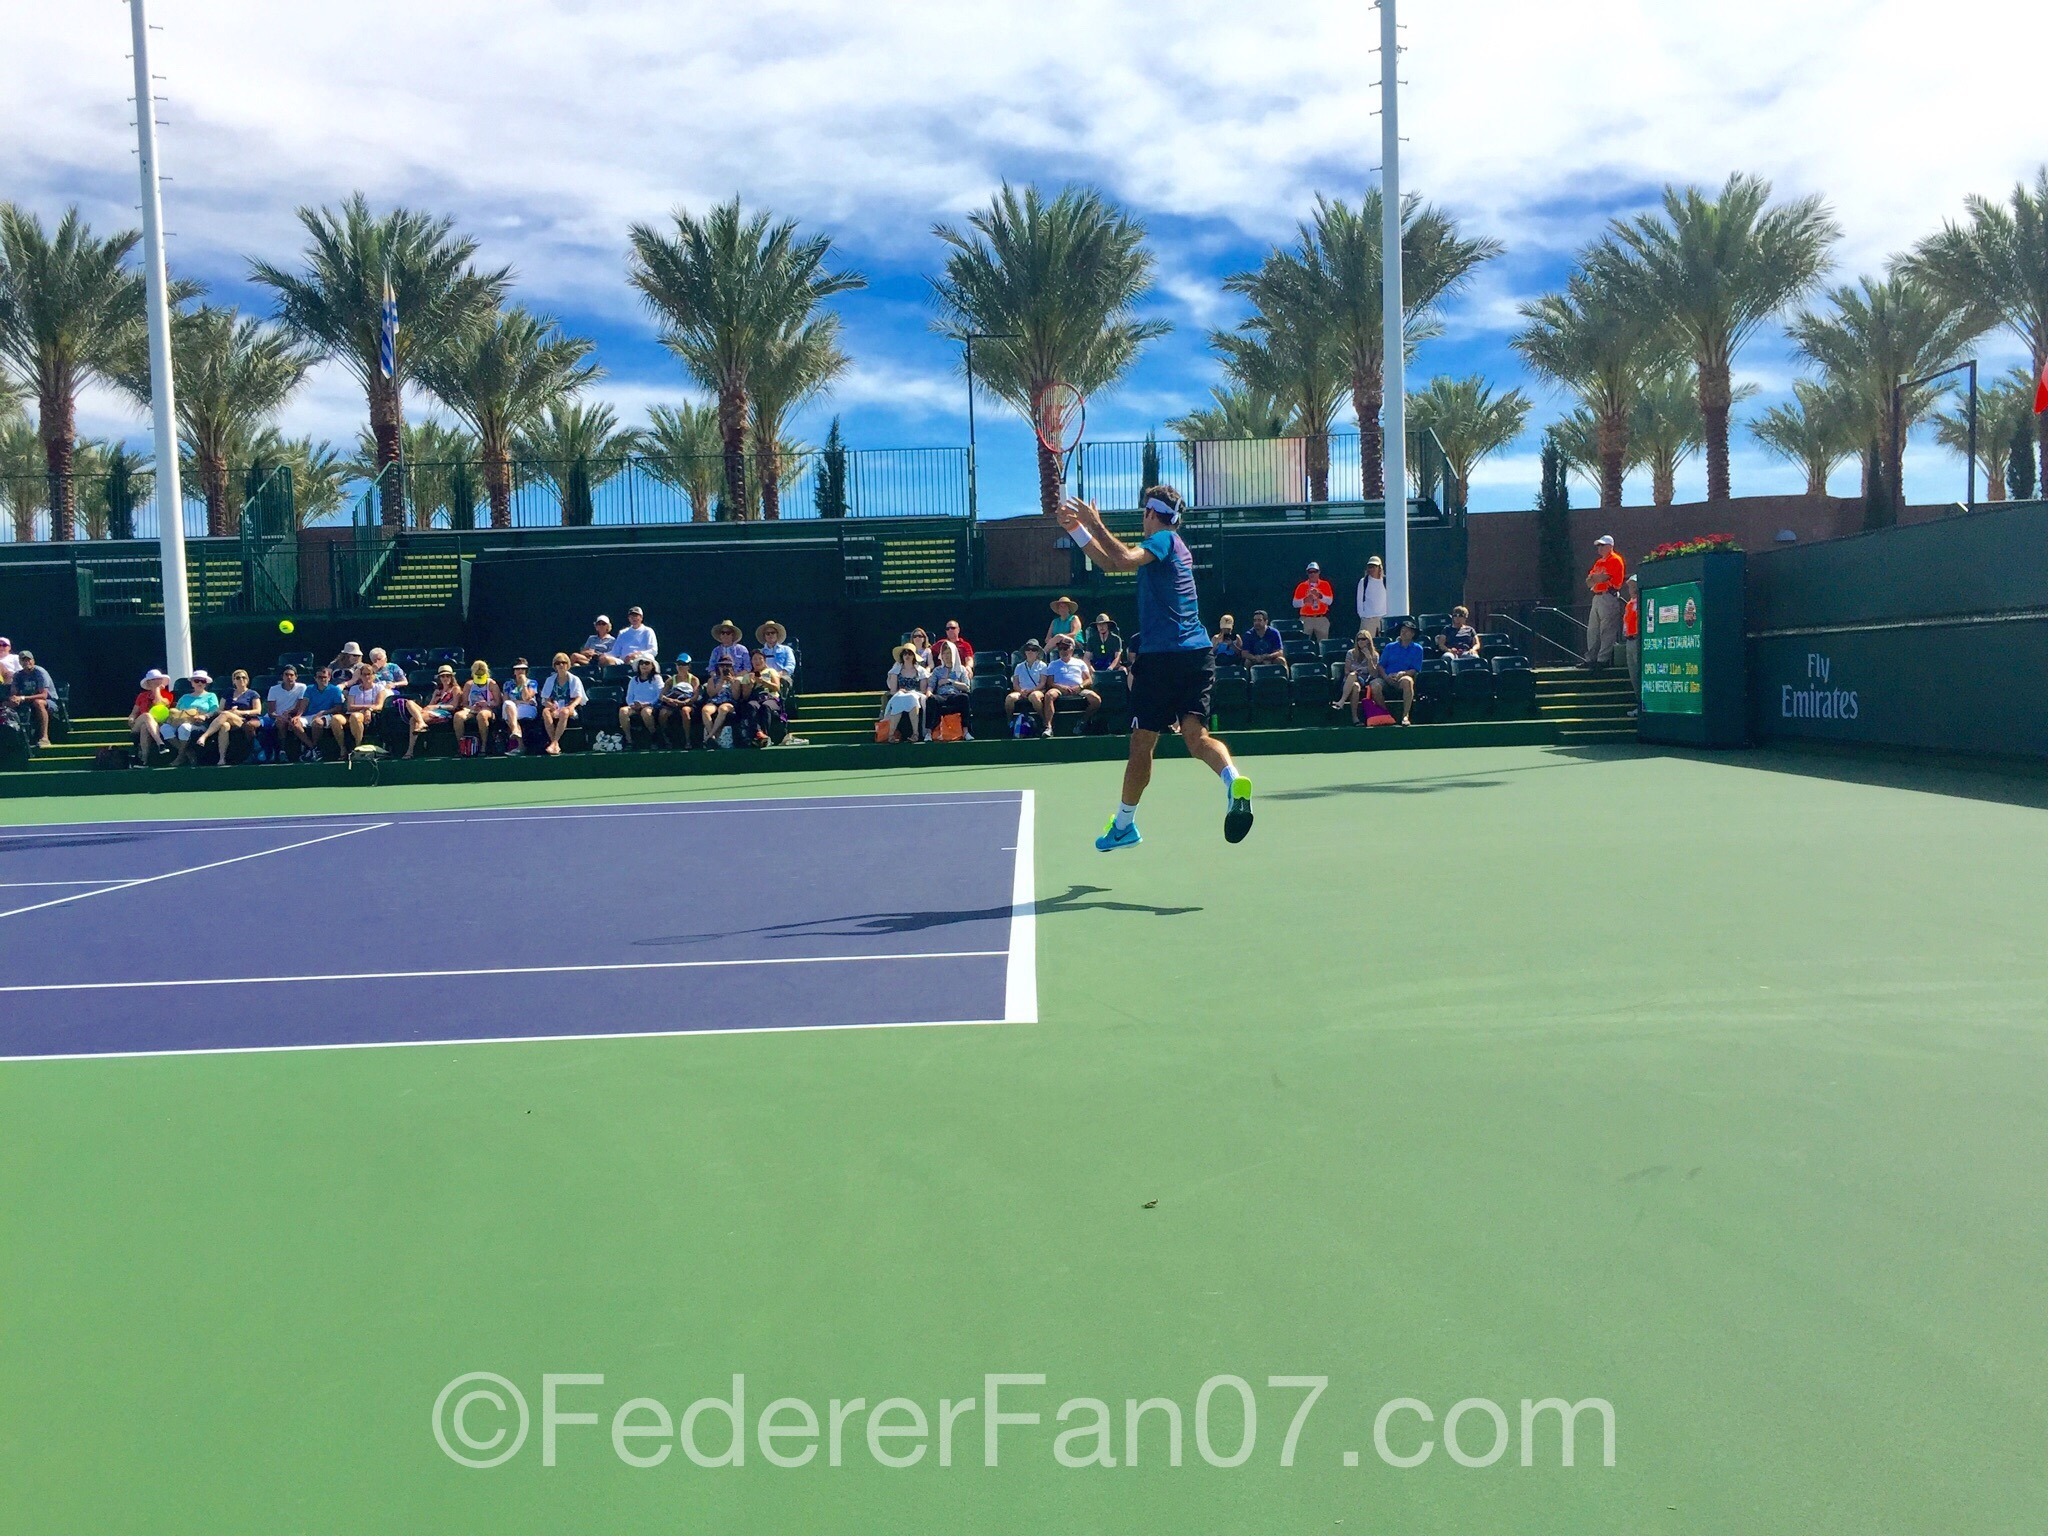 BNP Paribas Open Indian Wells Photos and Video